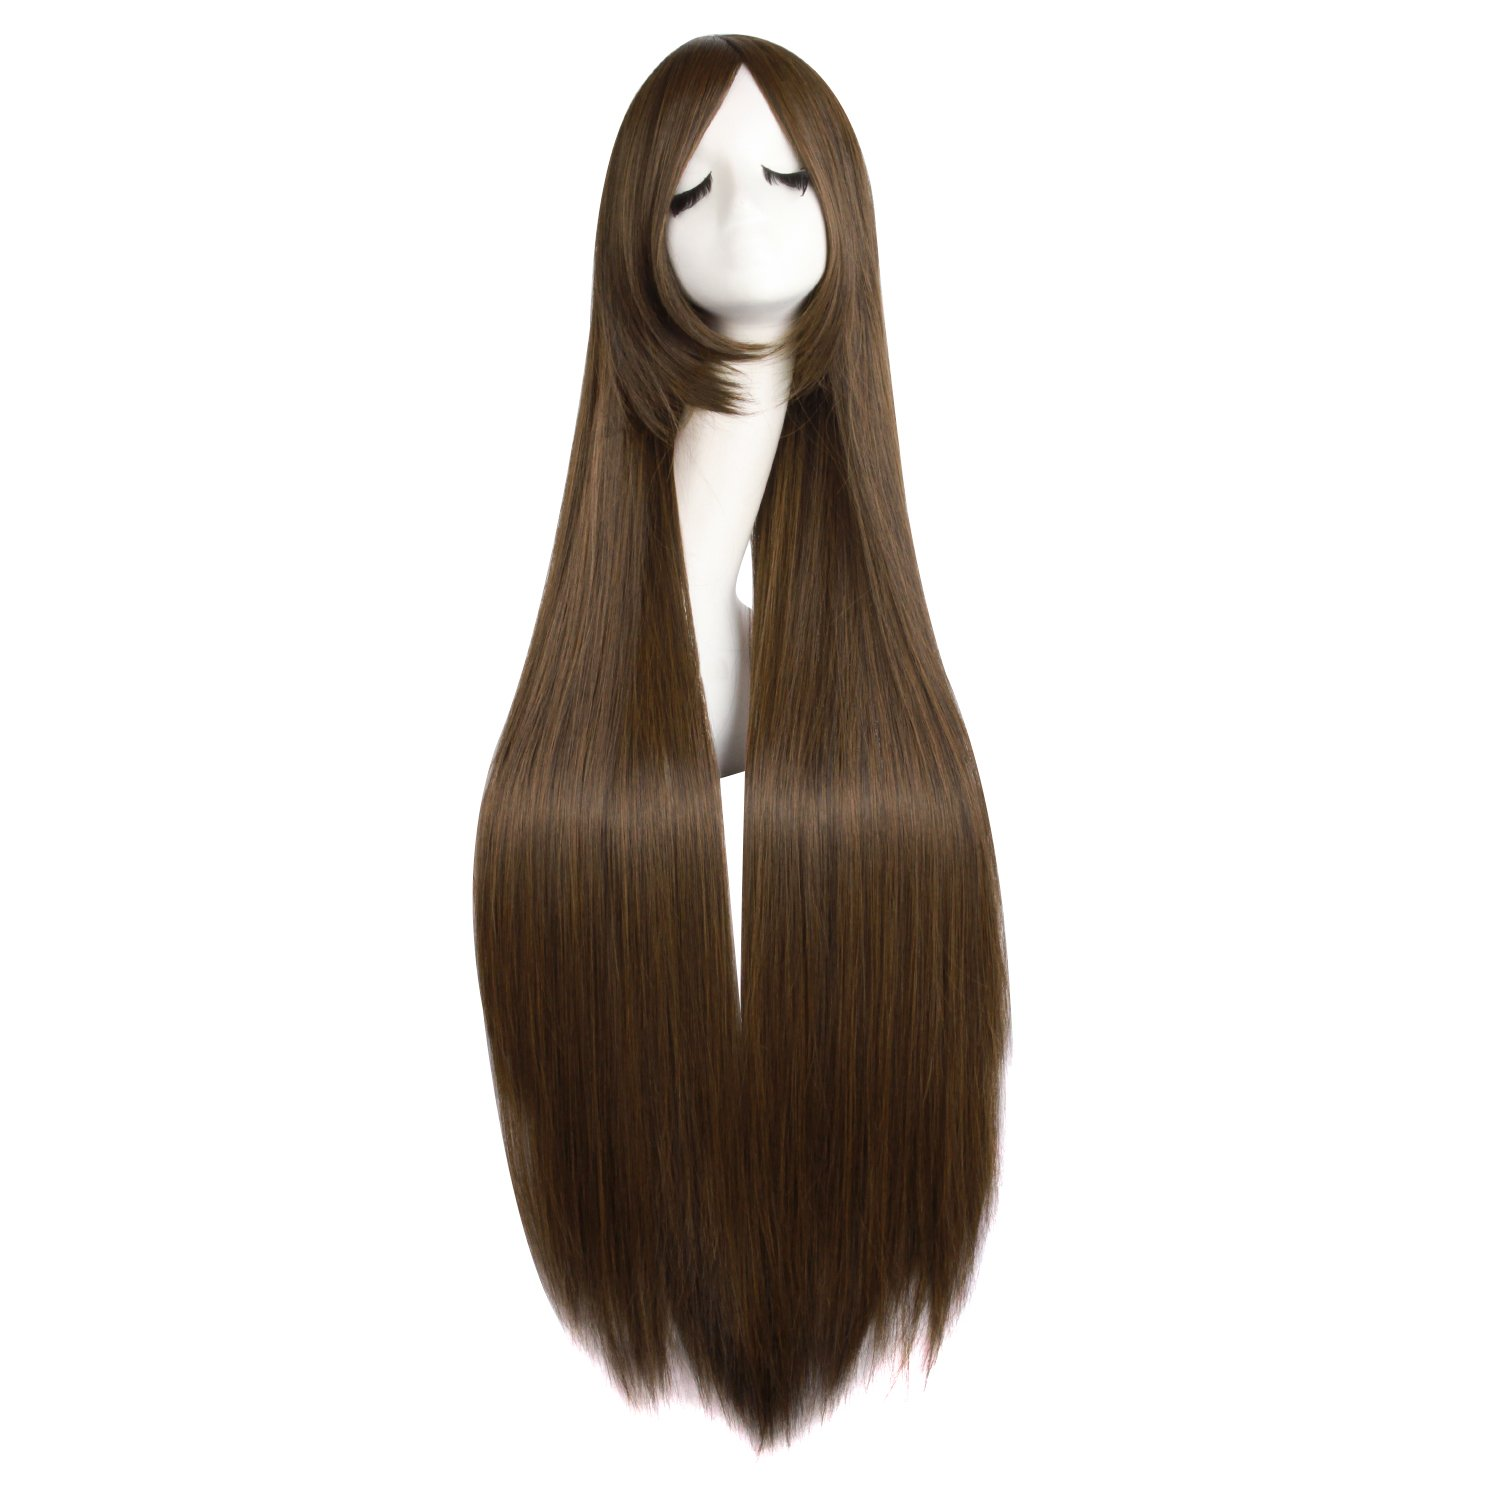 MapofBeauty 40 Inch/100cm Oblique Bangs Anime Costume Long Straight Cosplay Wig Party Wig (Blood Red)